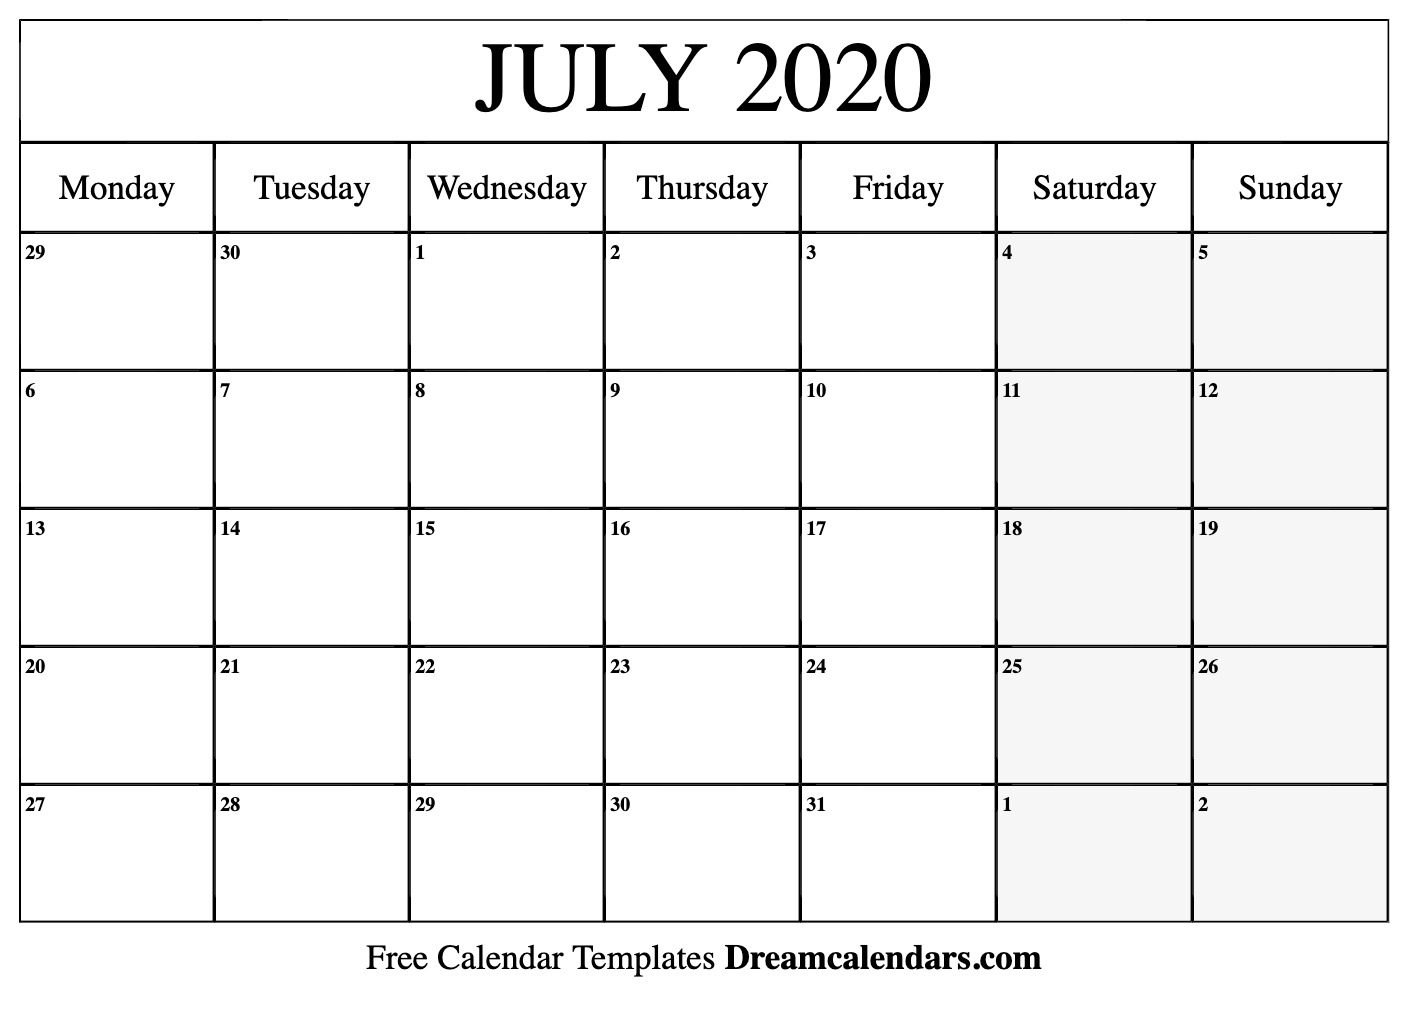 July 2020 Calendar Template Word, Pdf, Excel Format - July